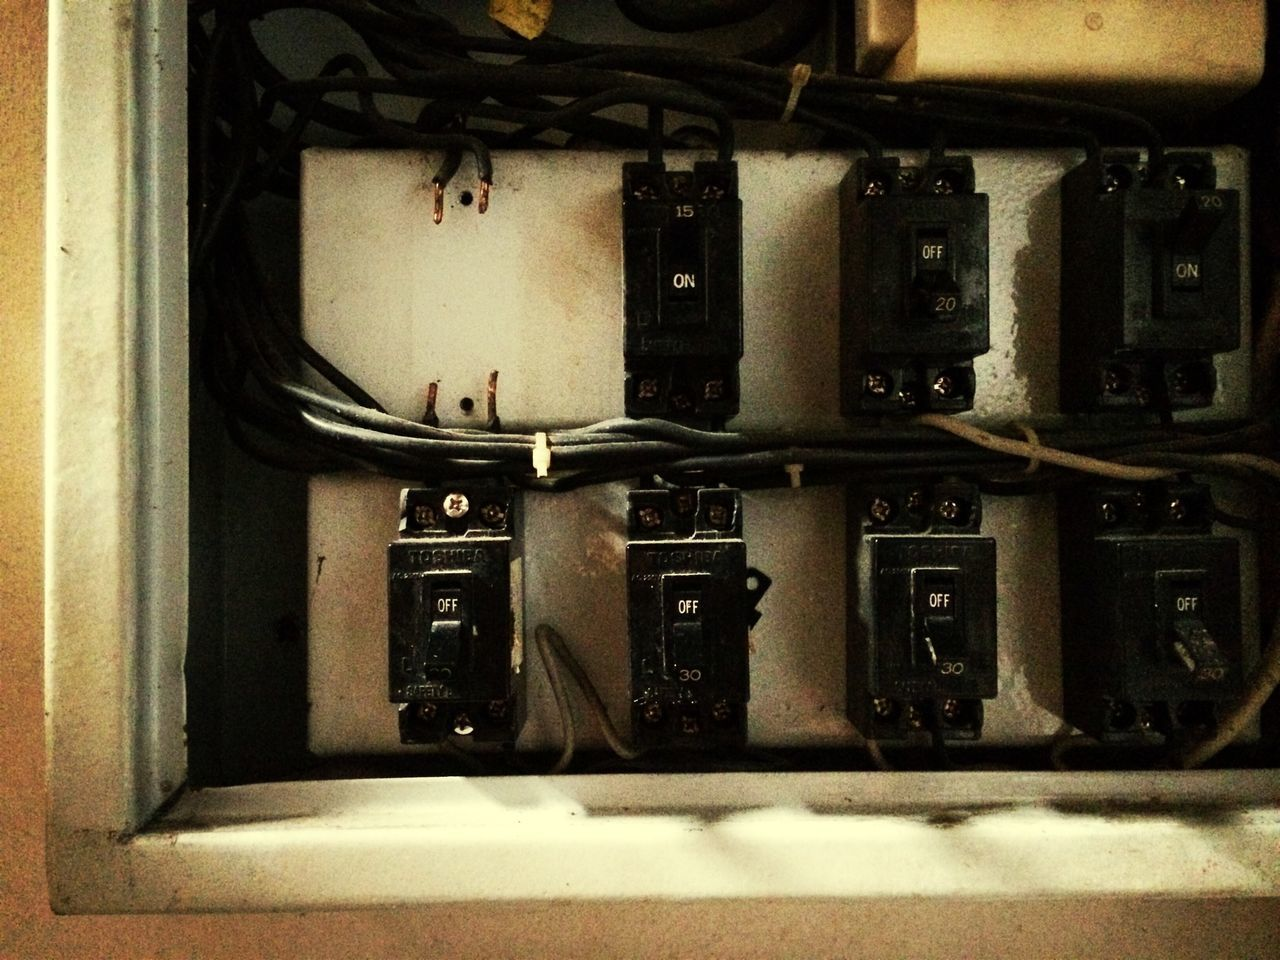 Fuse boxes on wall